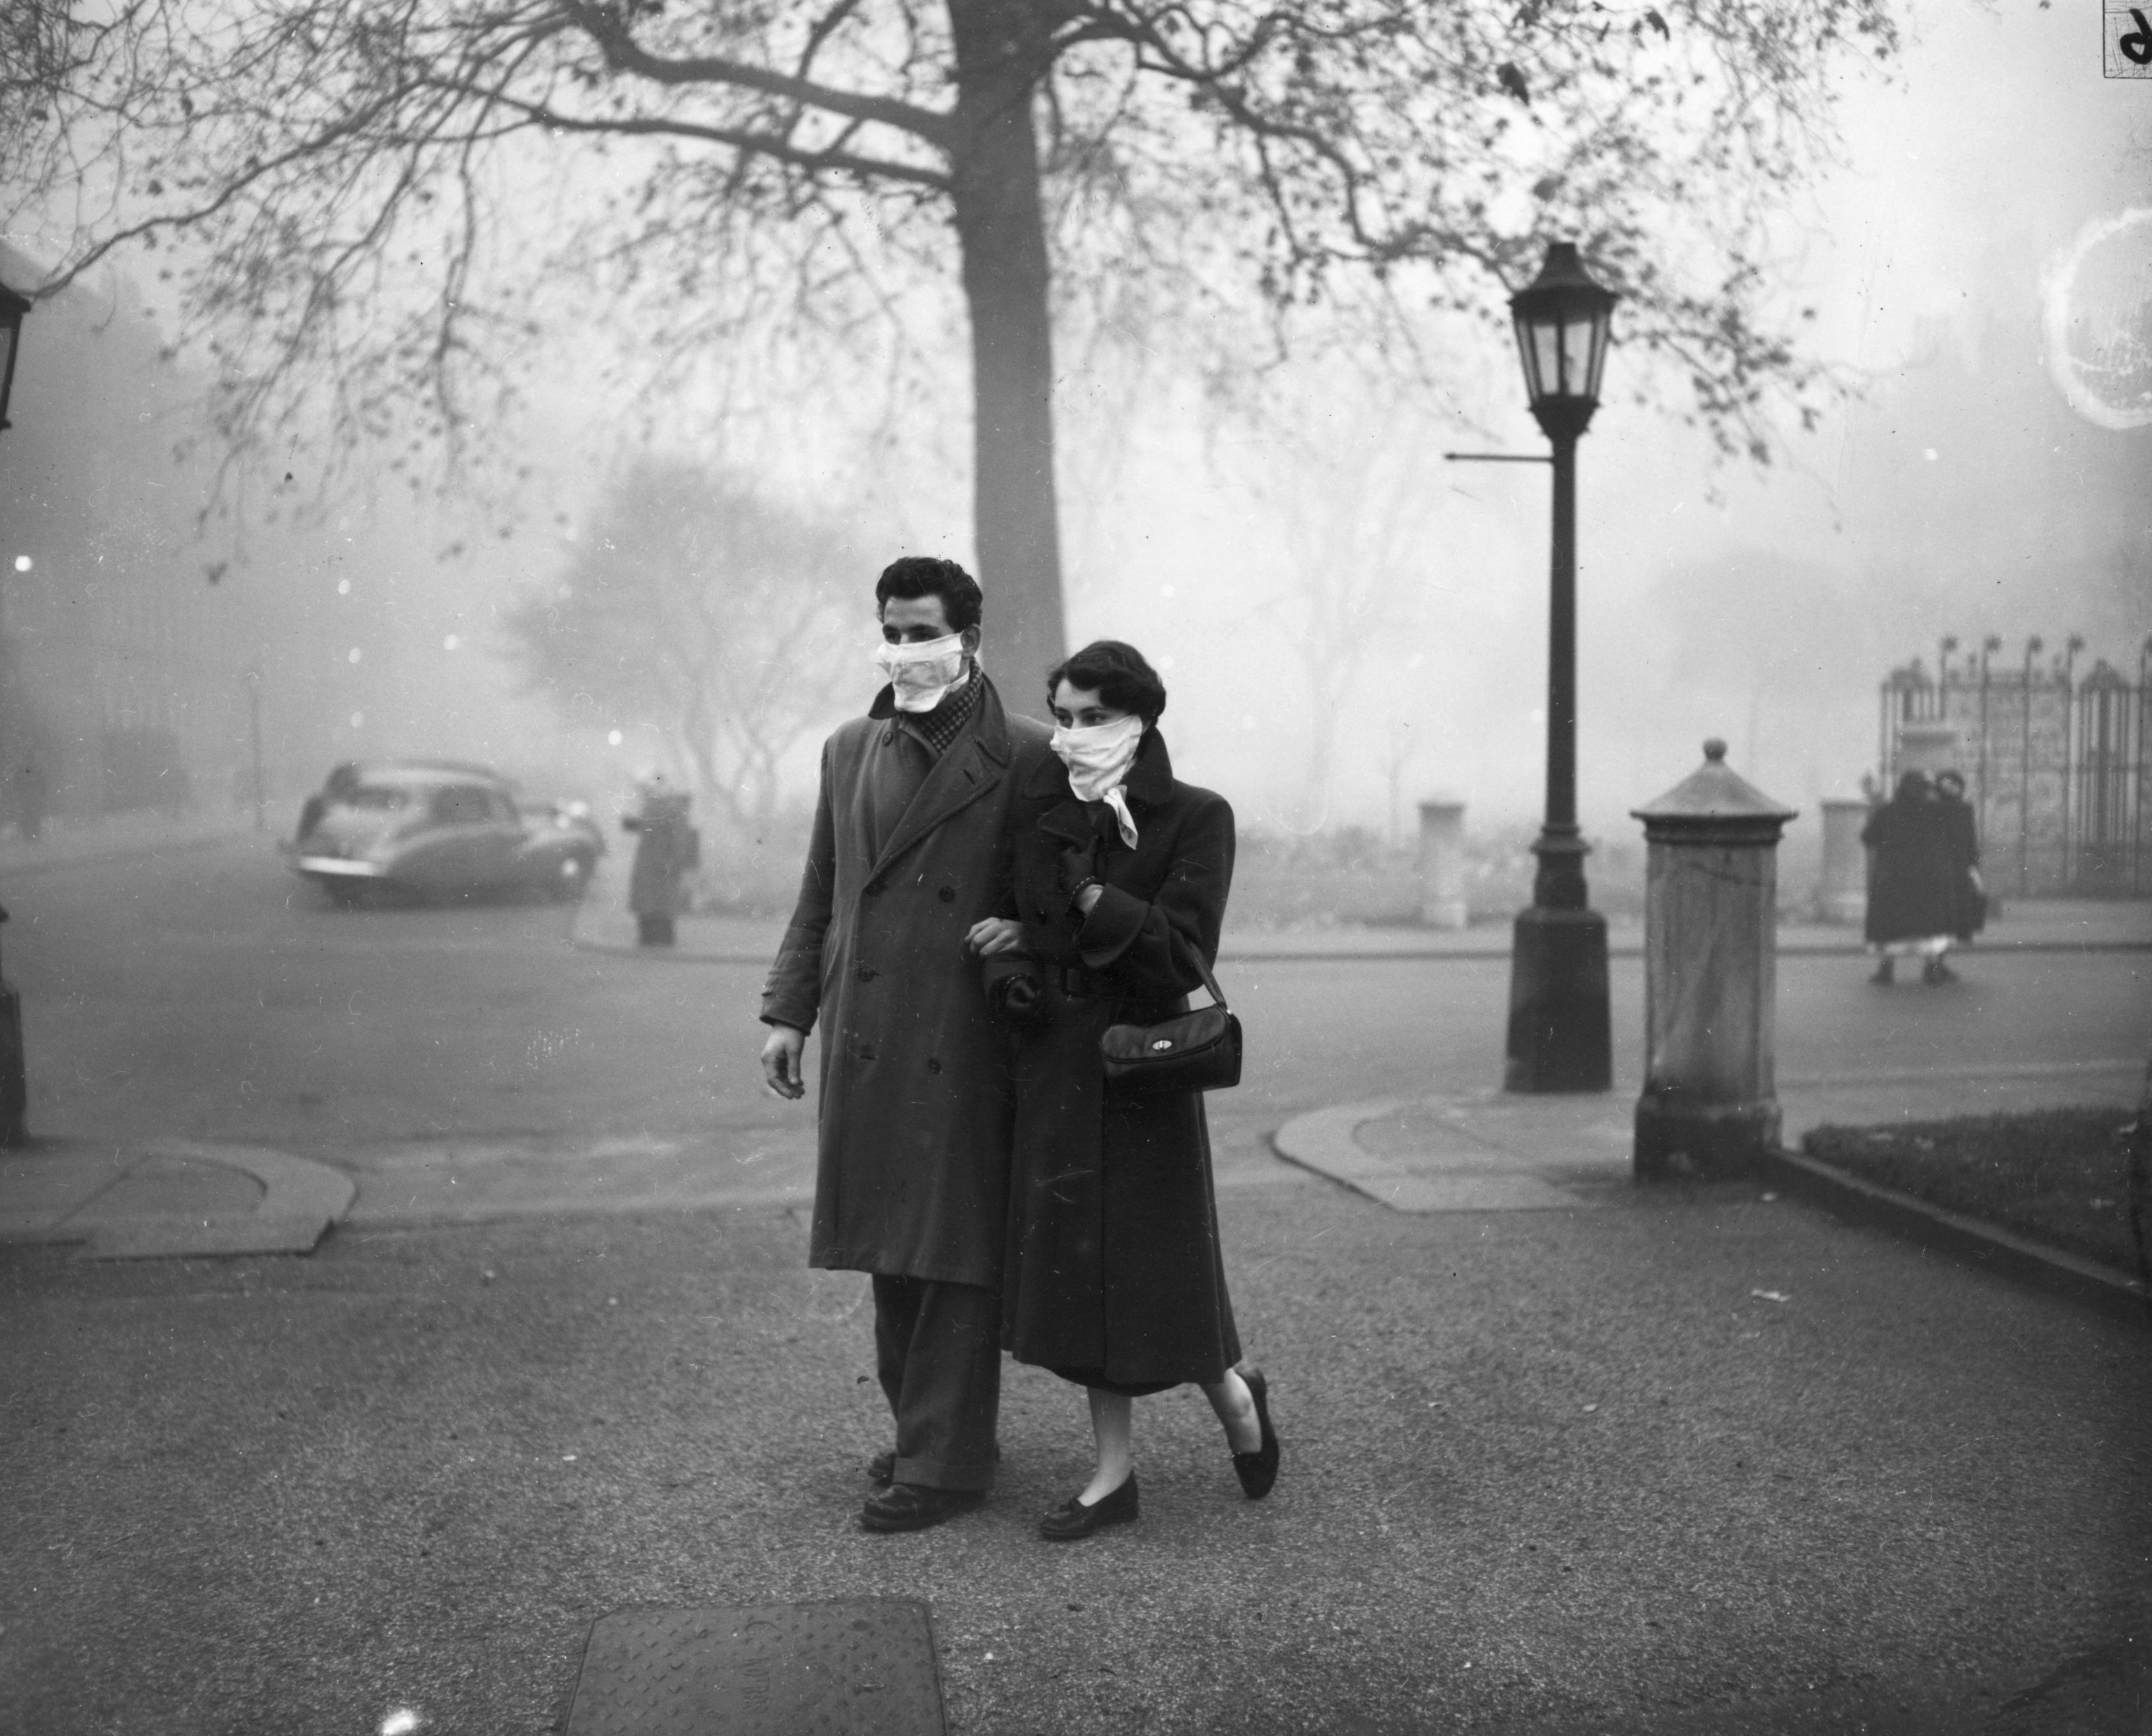 November 1953: A couple walking in London wearing smog masks on a foggy day. (Photo by Monty Fresco/Topical Press Agency/Getty Images)